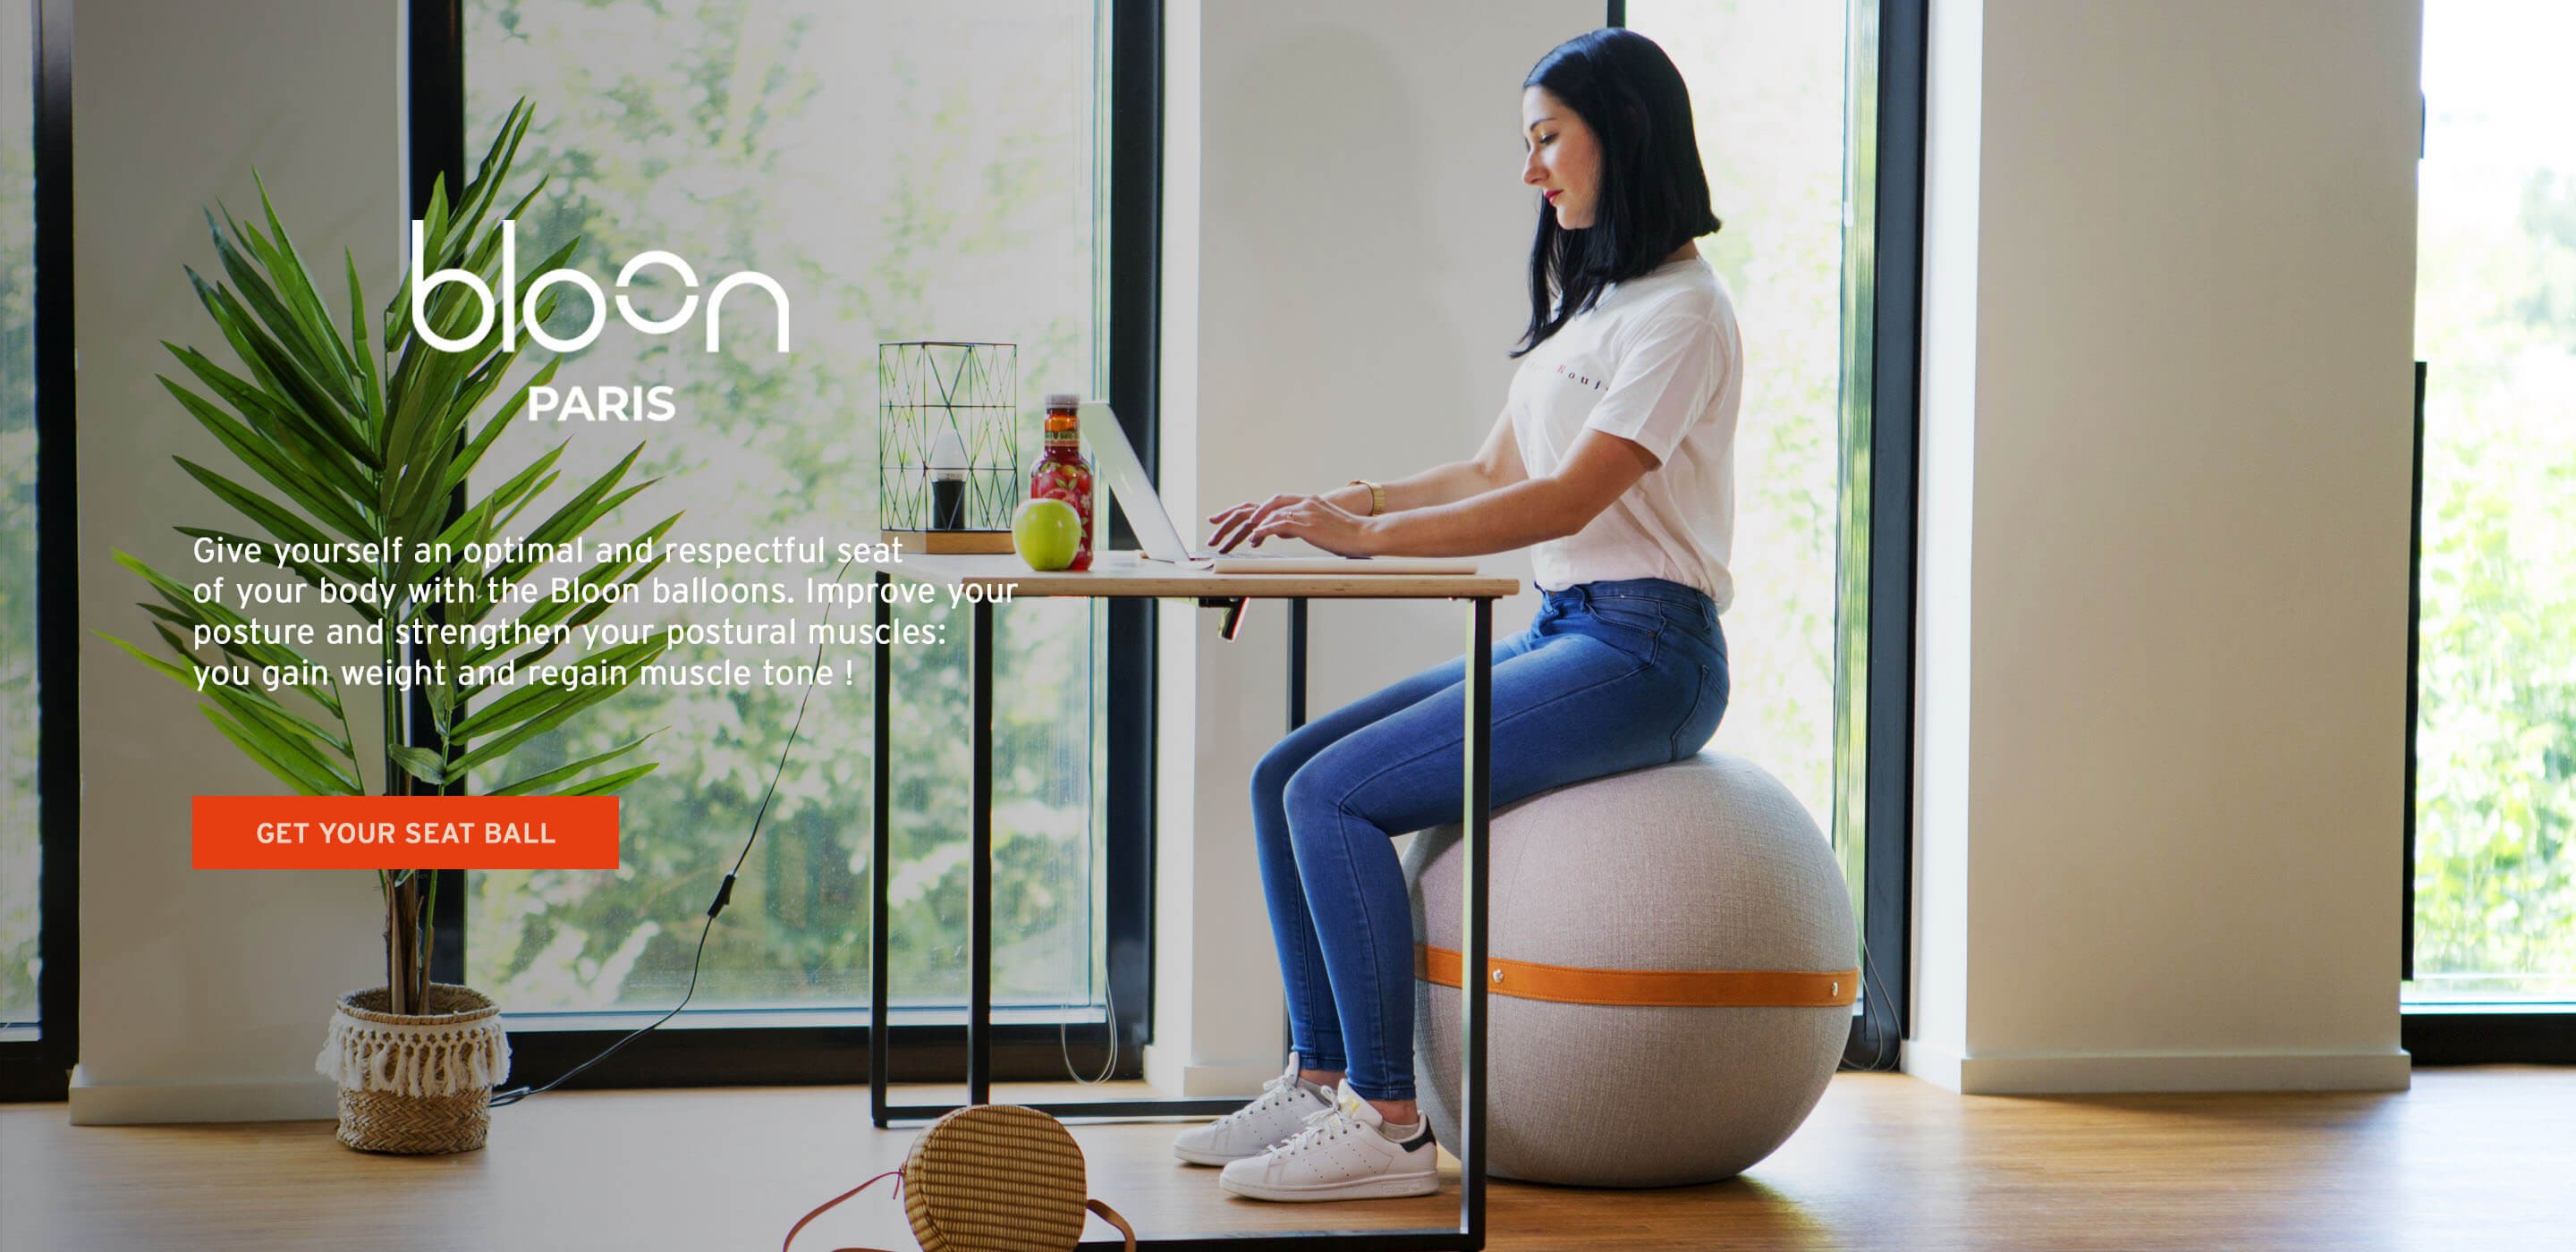 Bloon Paris: strengthen your back and correct your posture with a high quality seat ball